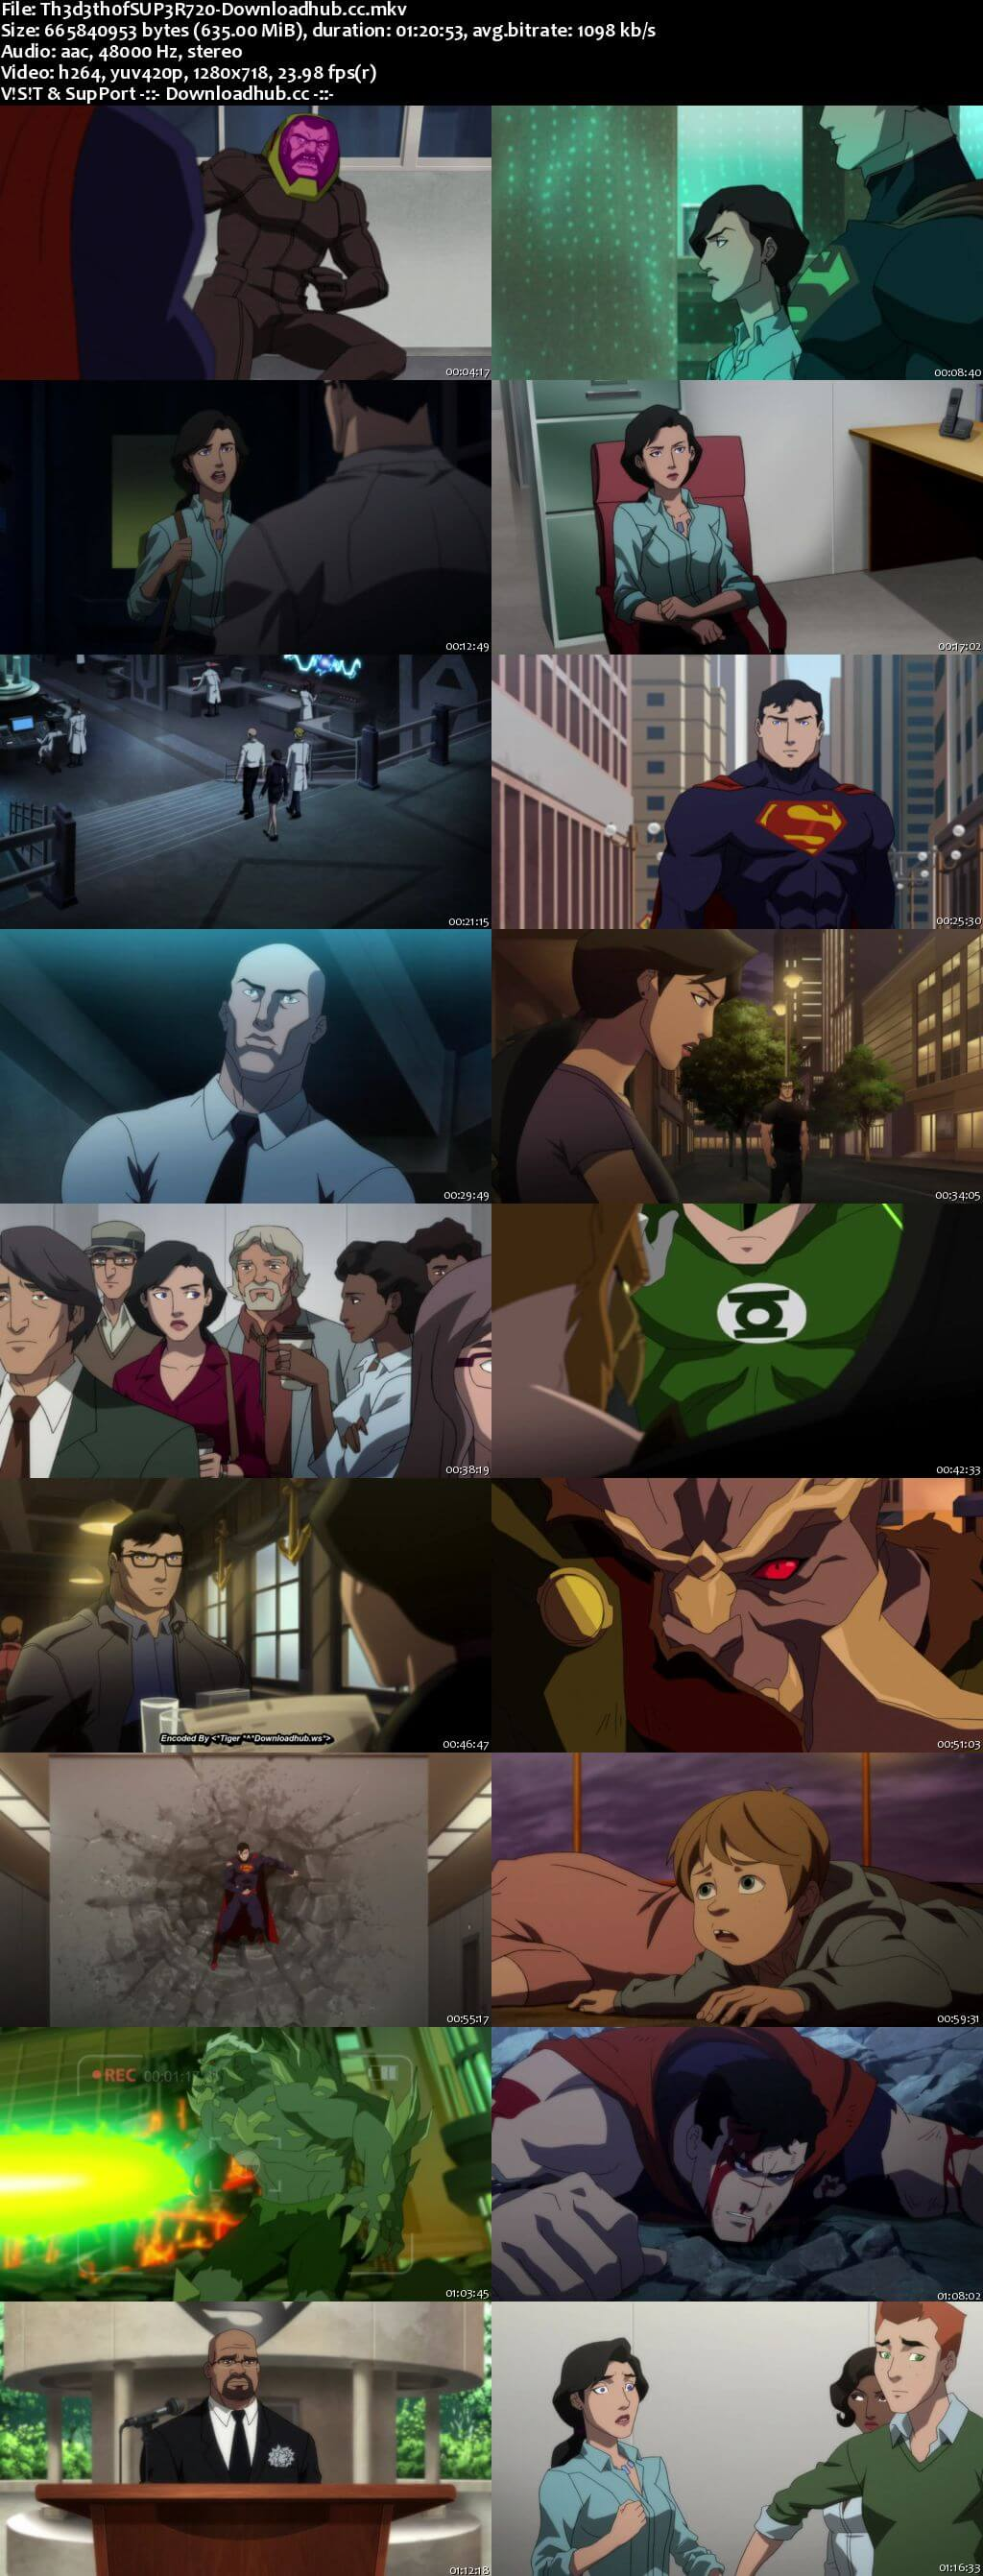 The Death of Superman 2018 English 720p Web-DL 600MB